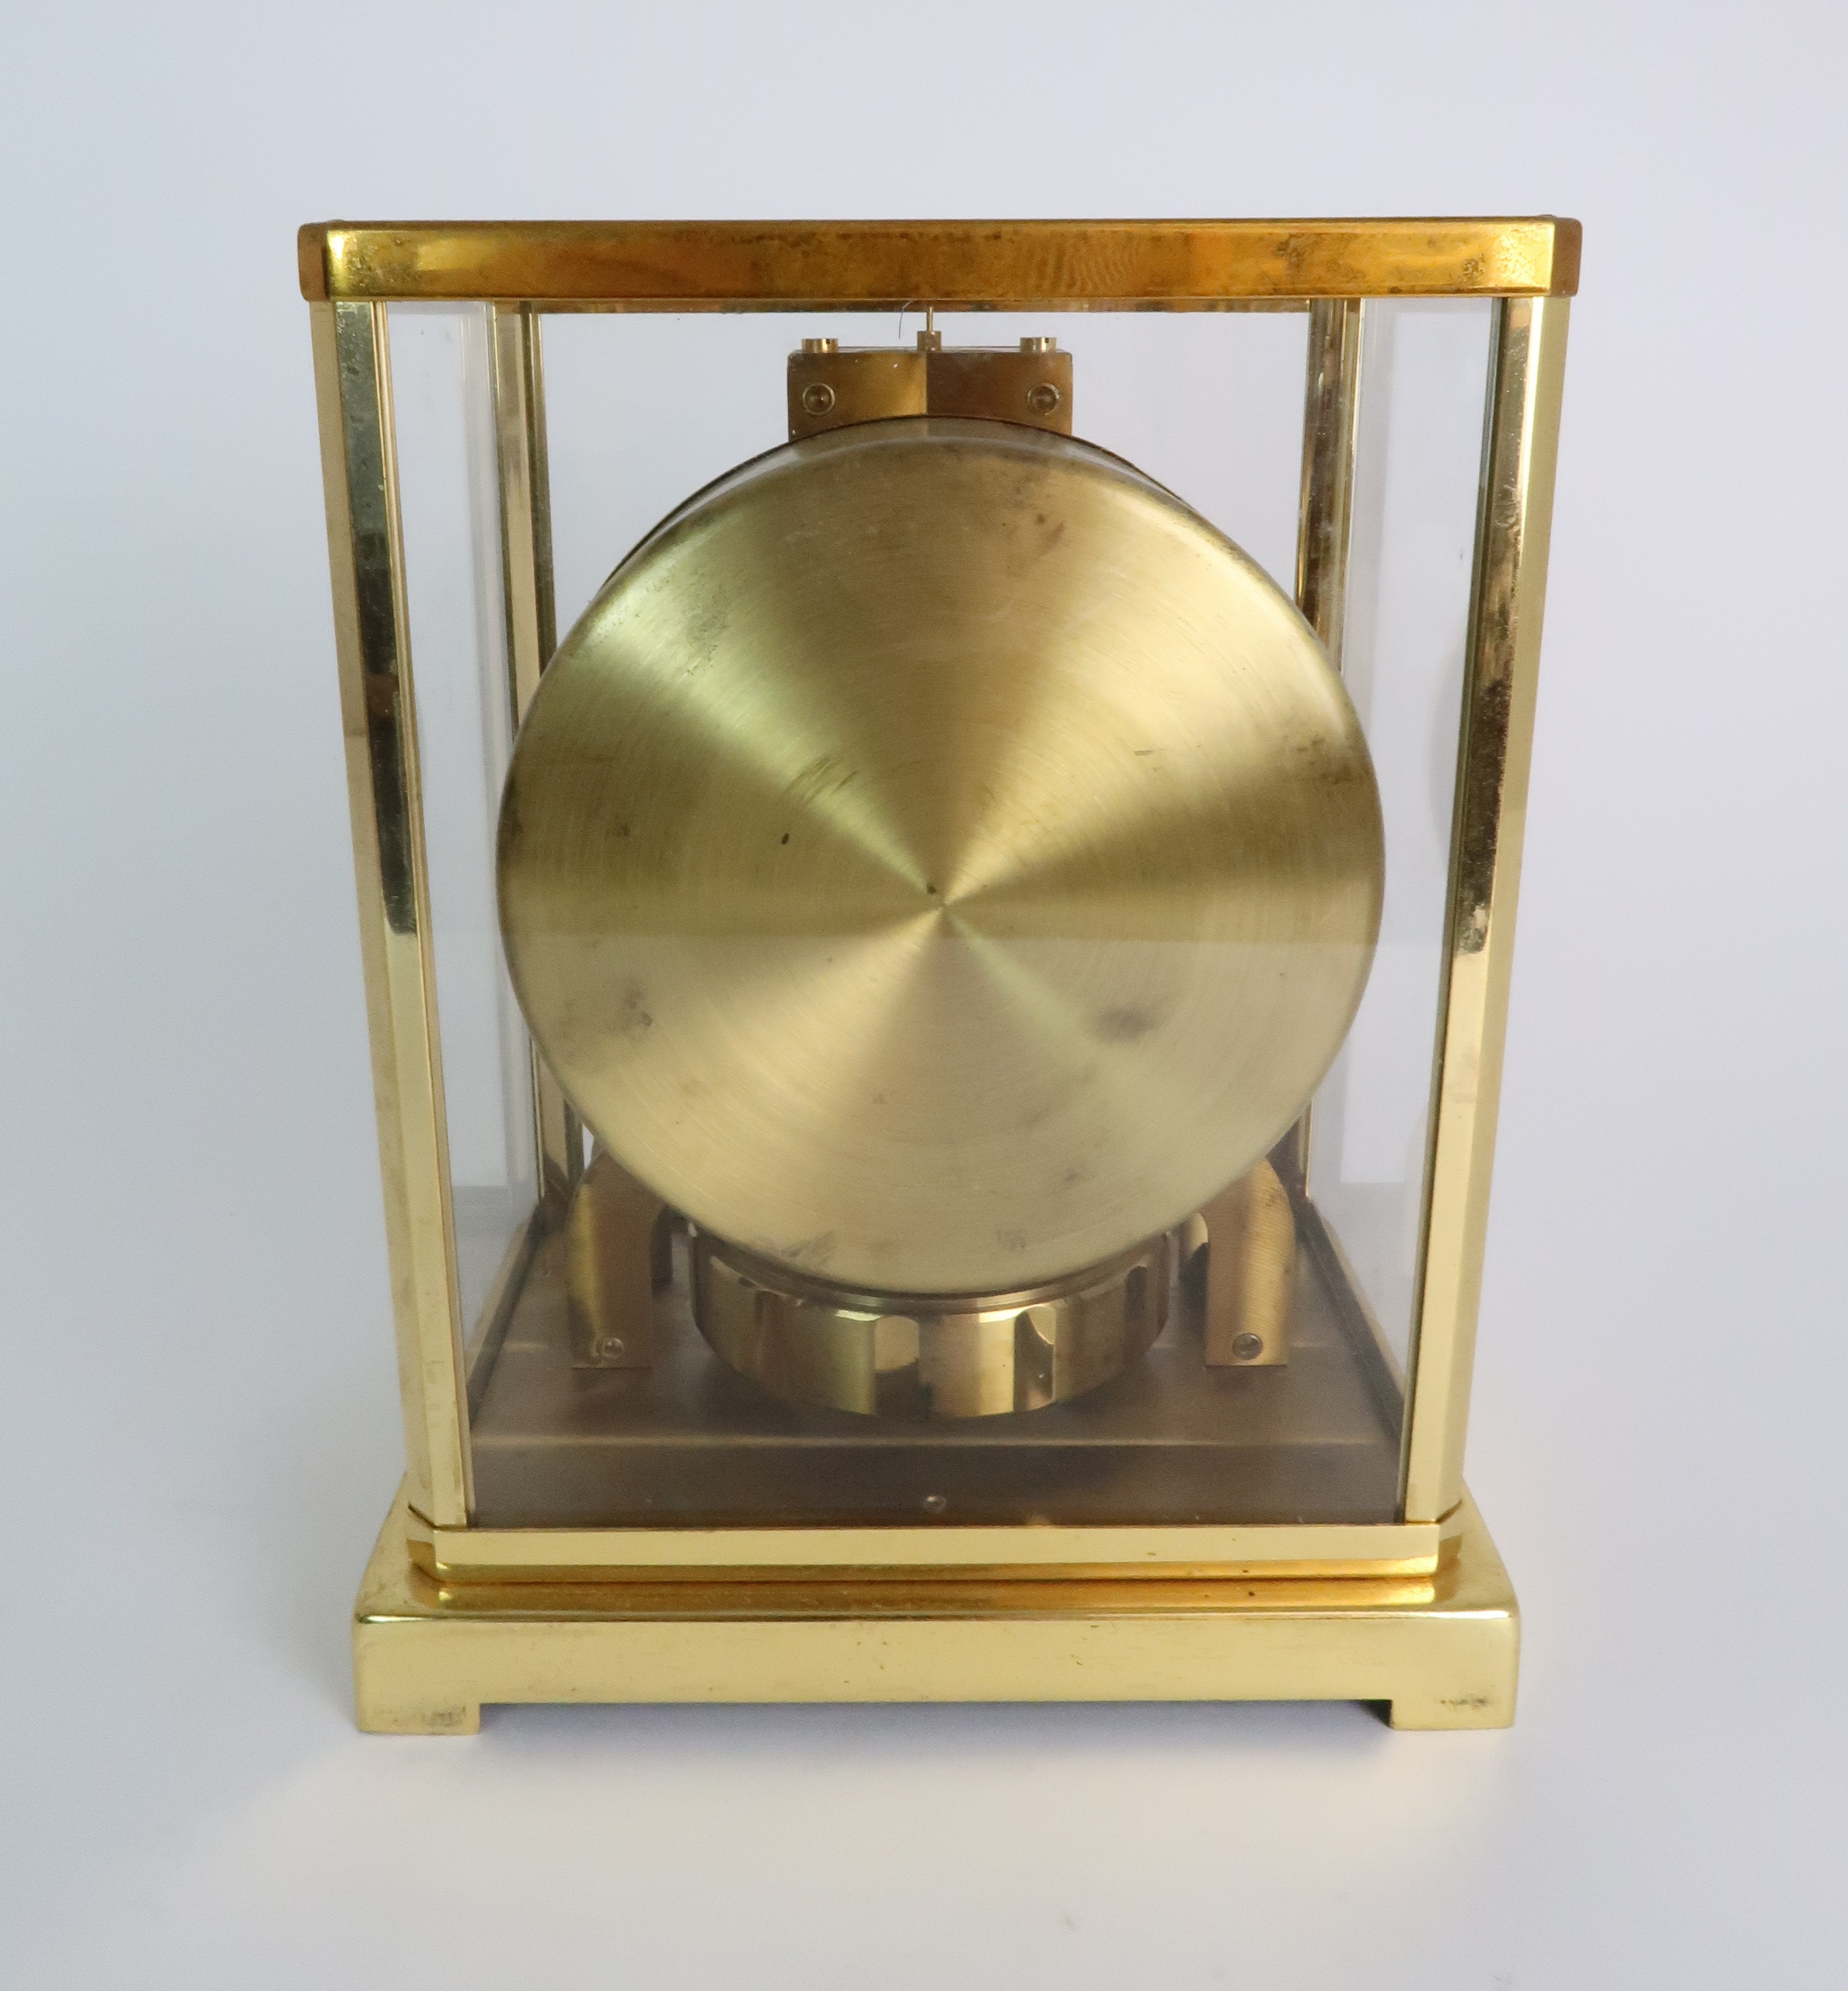 A JAEGER LE COULTRE ATMOS CLOCK in glazed brass case, the white enamel chapter ring with applied - Image 3 of 8